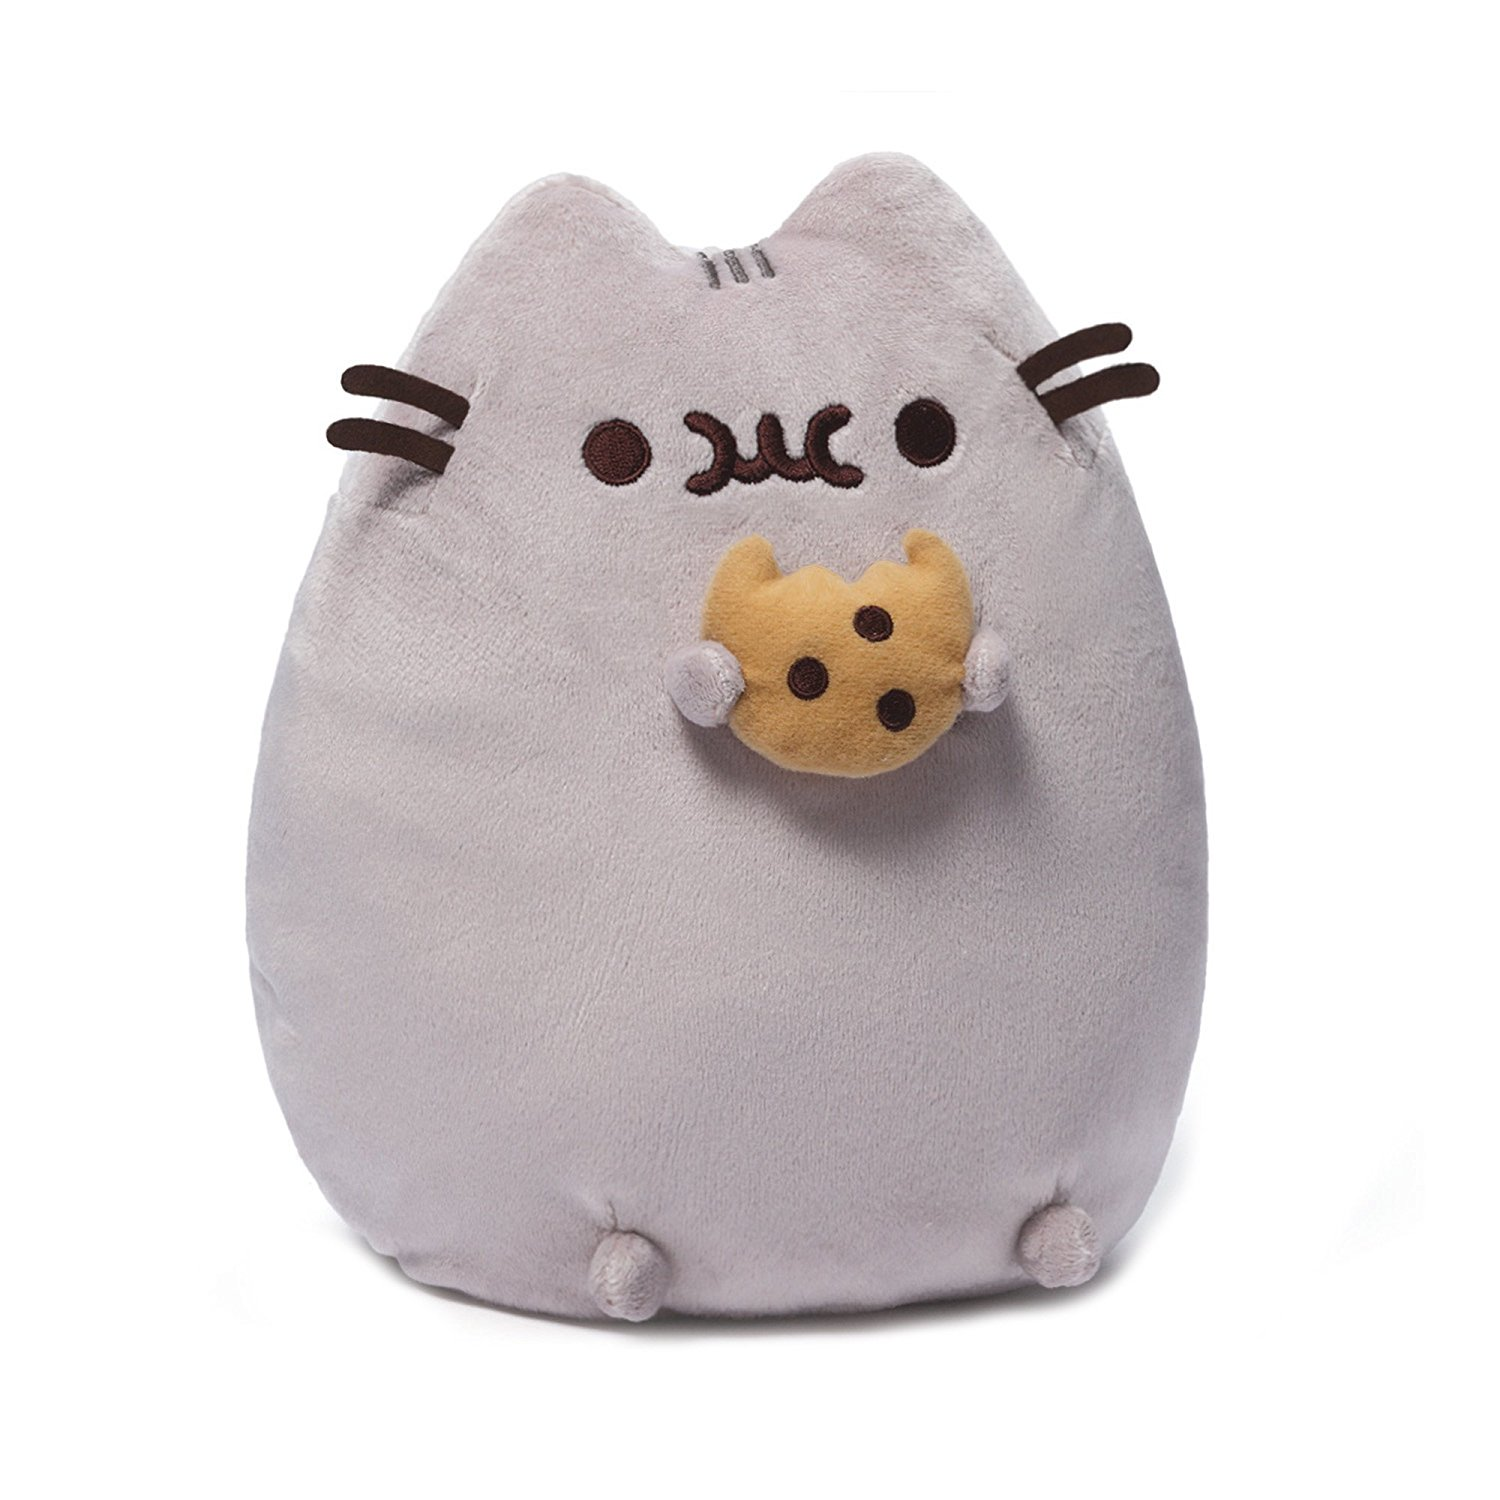 best-valentines-day-gift-ideas-for-her-2017-gund-pusheen-plush-with-cookie